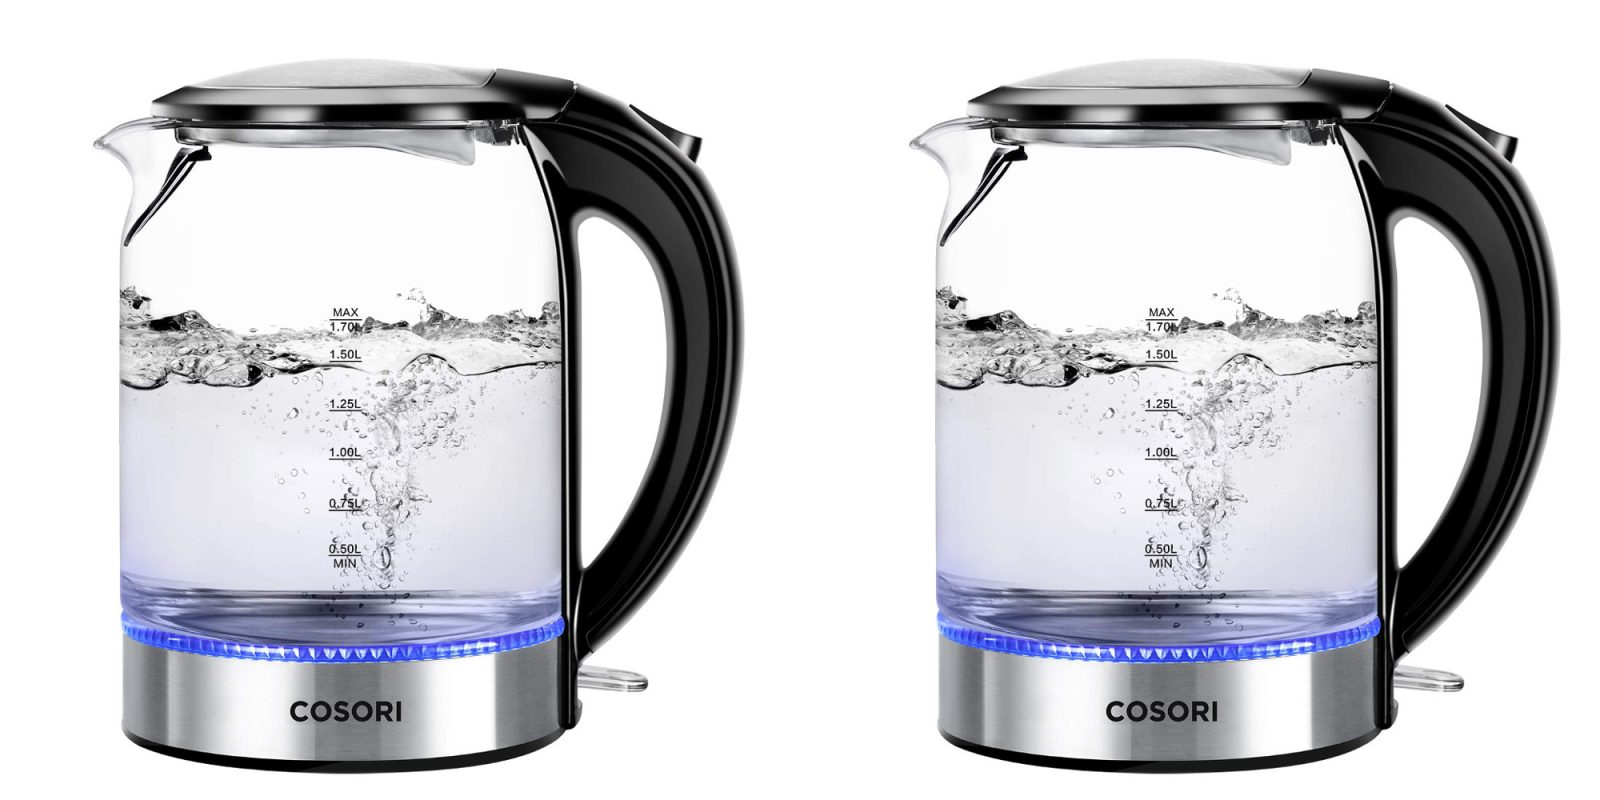 COSORI's glass/stainless steel kettle with LED lighting now 25% off at $30